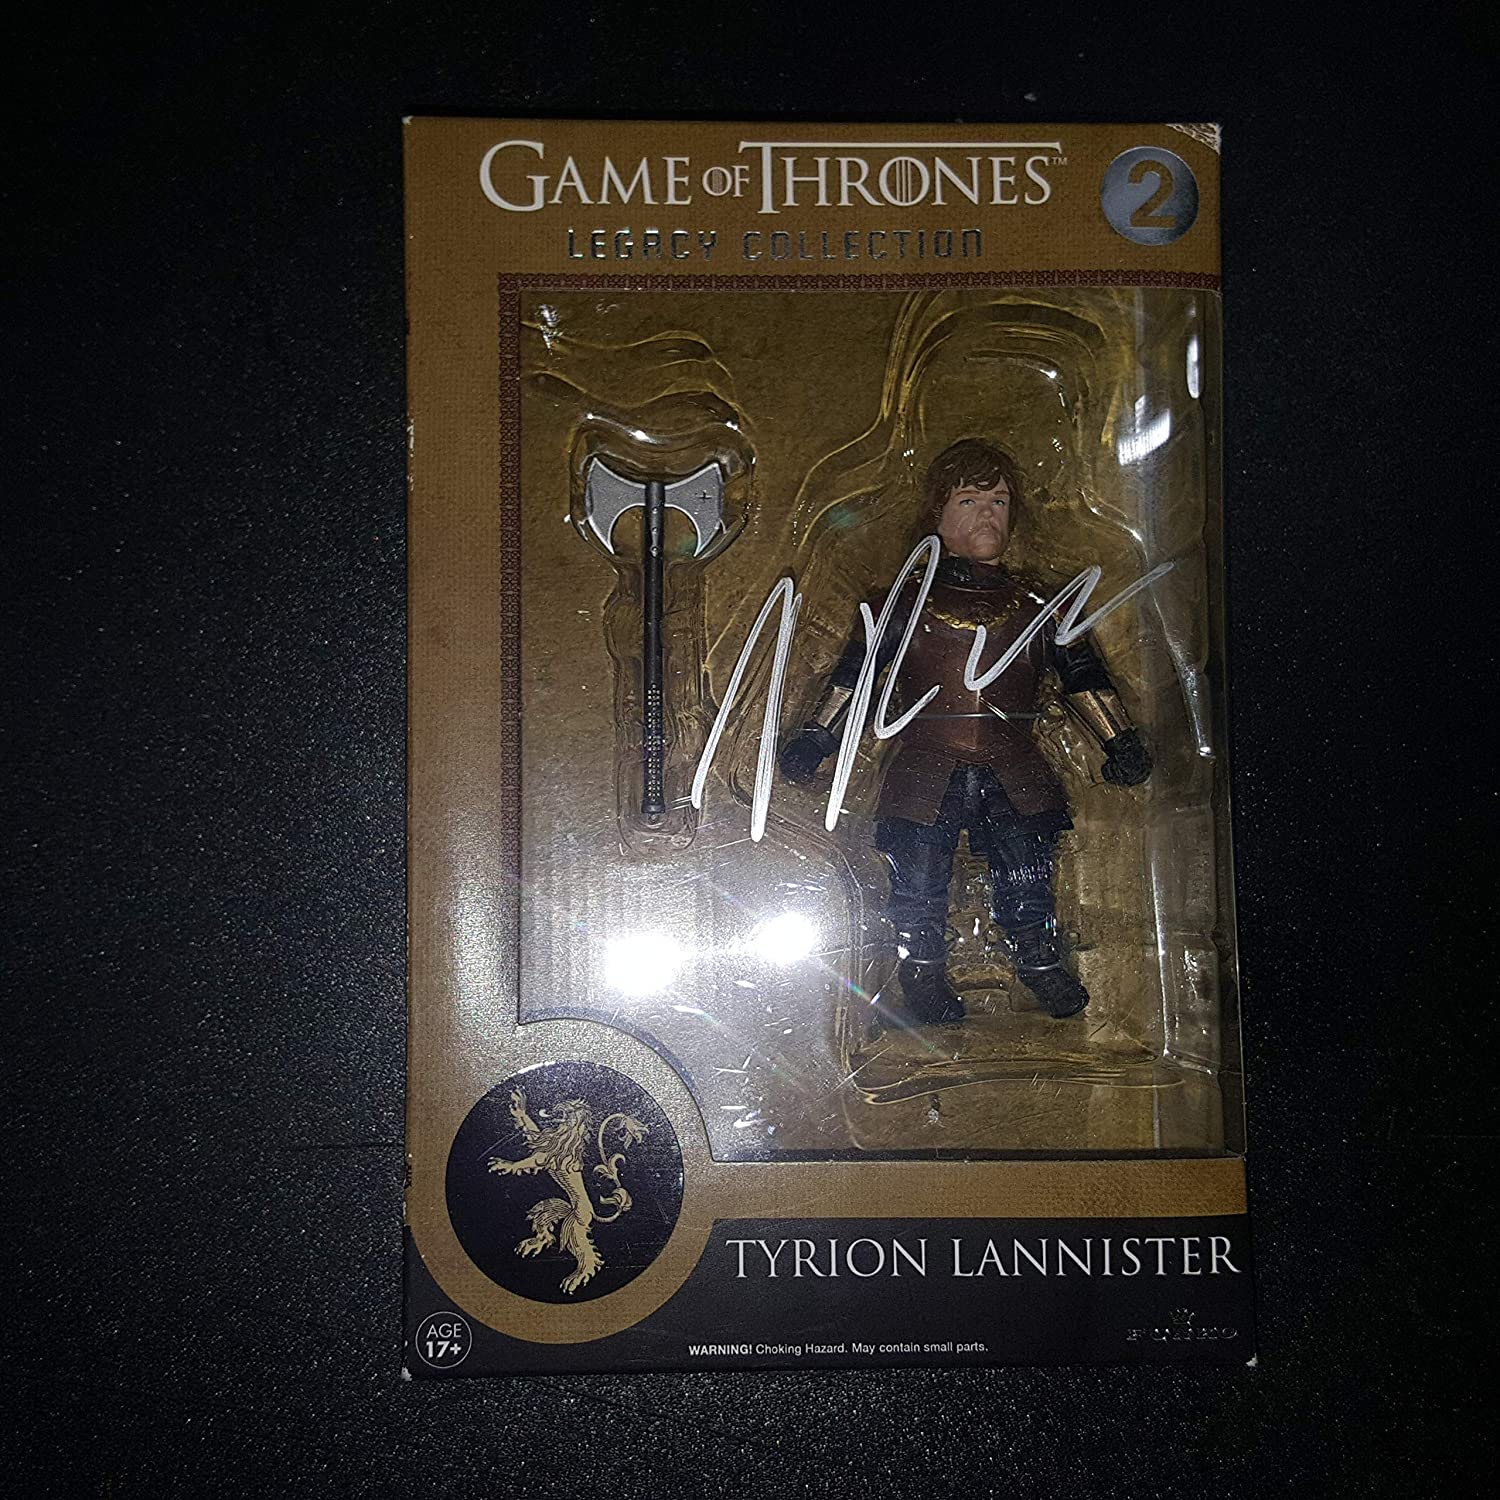 Peter Dinklage - Autographed Signed Tyrion Lannister Figure - GAME OF THRONES Legacy Collection 2